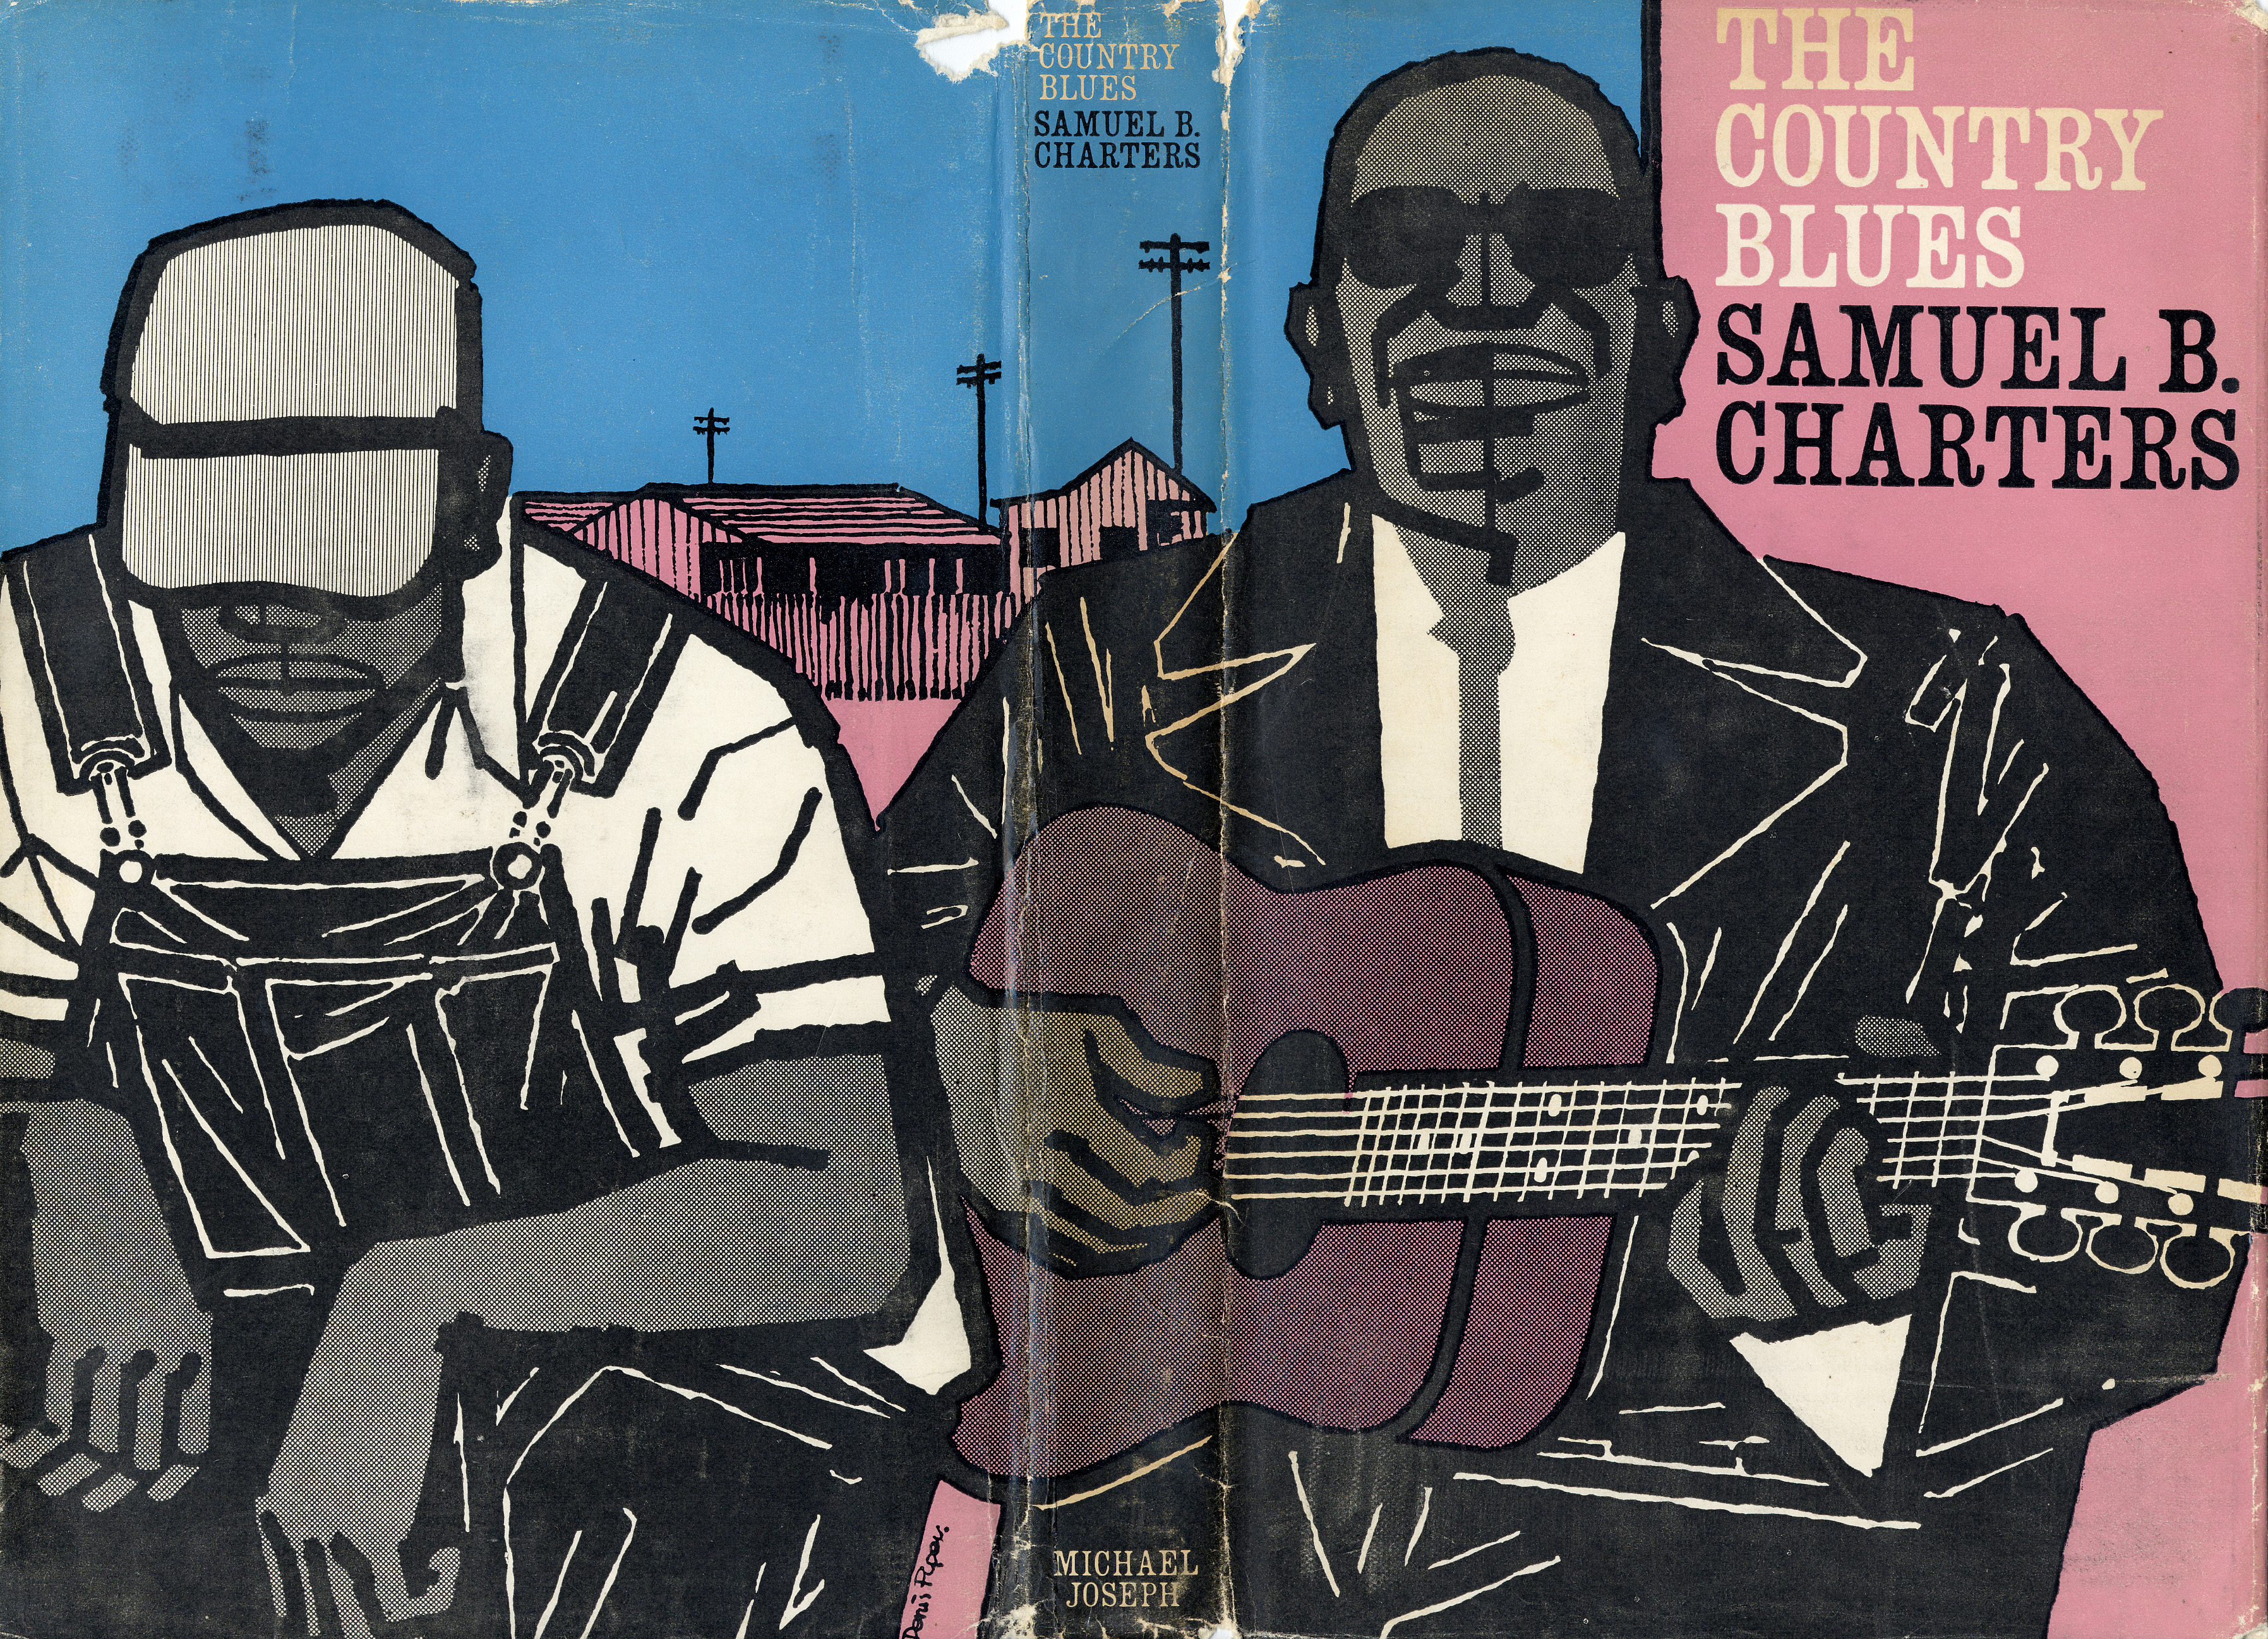 the impact of african american blues music in america In the early 1920s, blues music began to flourish with the influence of work songs, spirituals and african music in the harsh south along the mississippi river under the regime of jim crow, blues offered the black community escape from the harsh reality of violent racism.